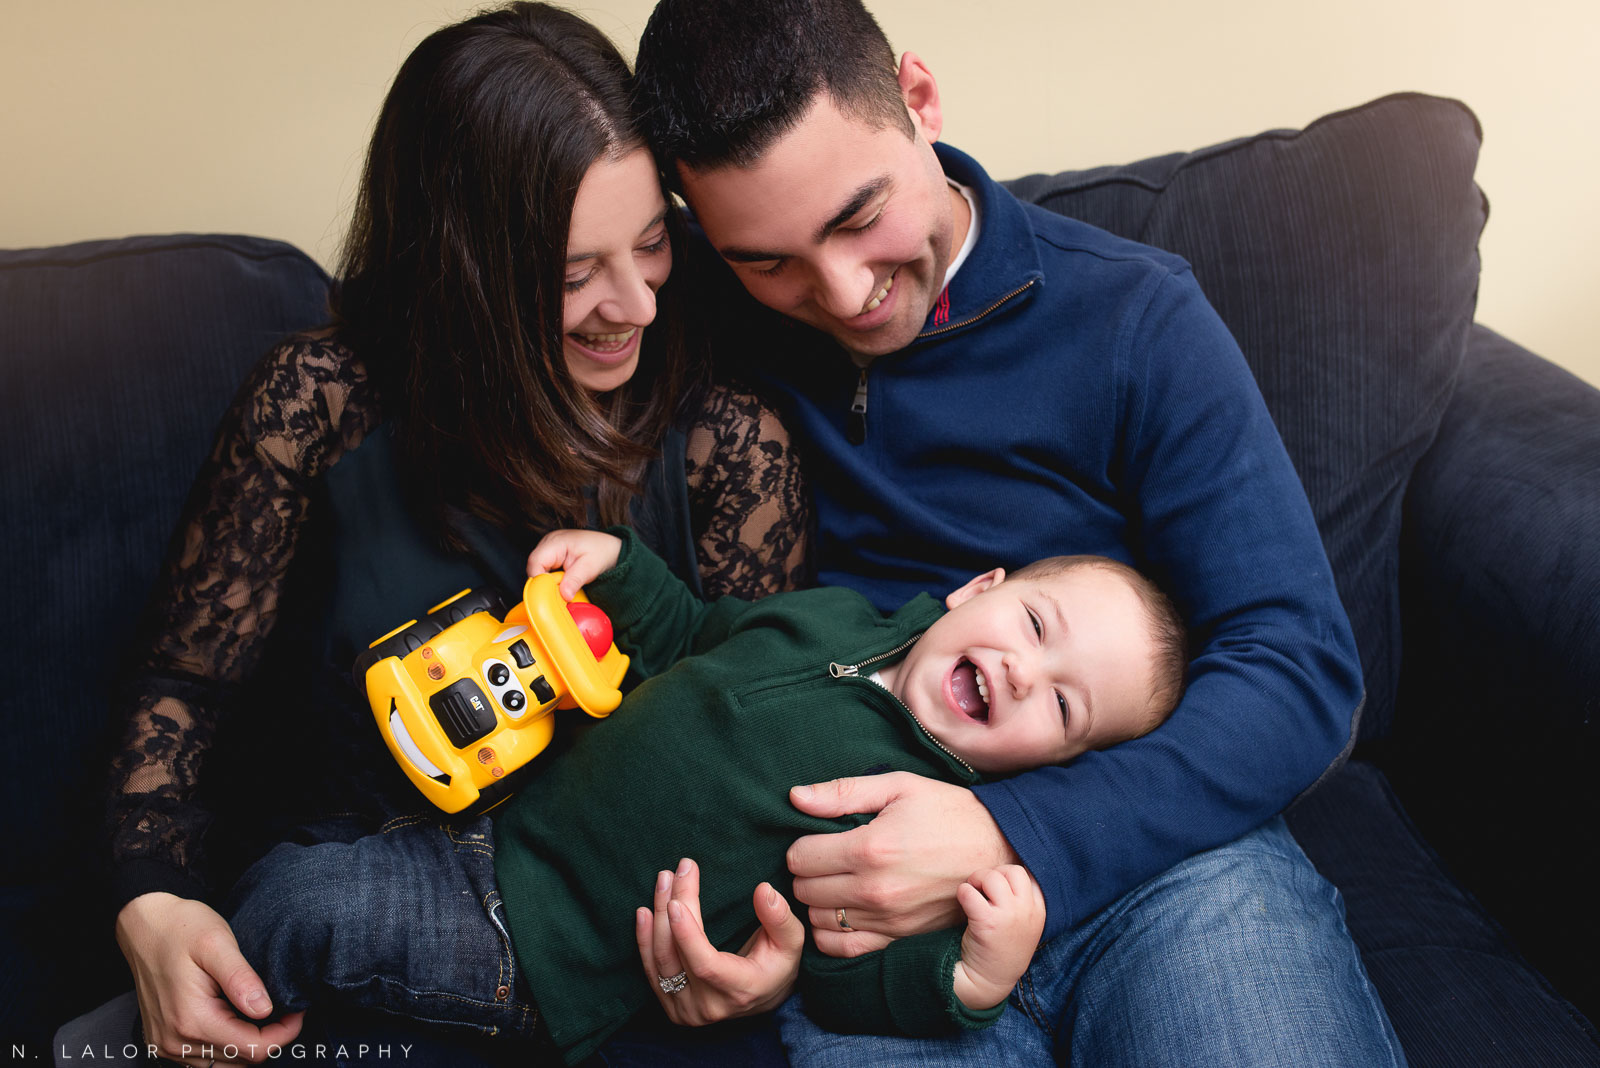 Laughing together.. mom, dad, and their toddler son. Candid lifestyle family portrait by N. Lalor Photography.